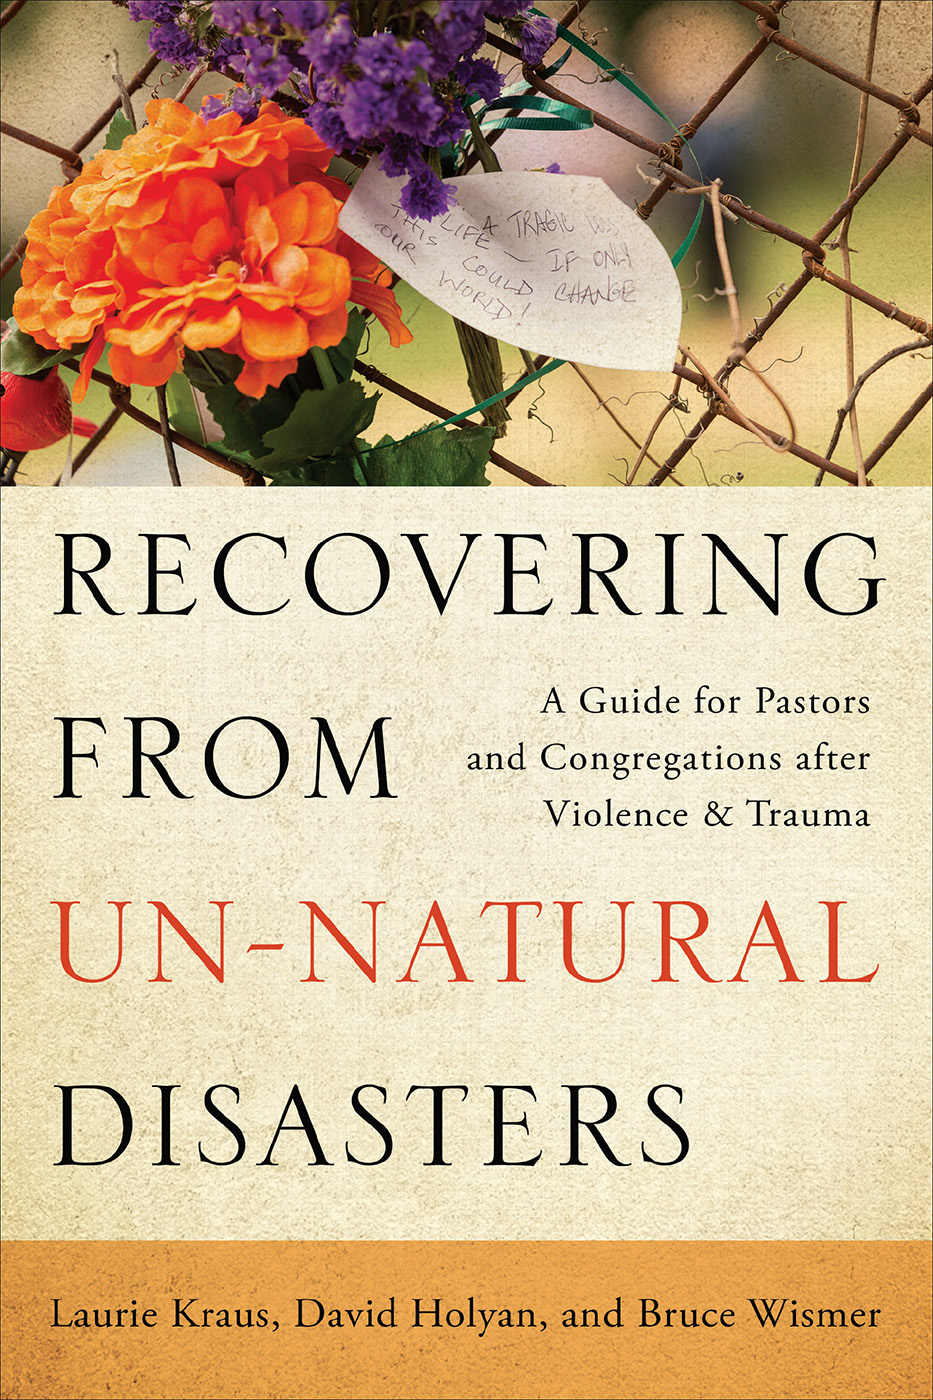 Recovering from Un-Natural Disasters